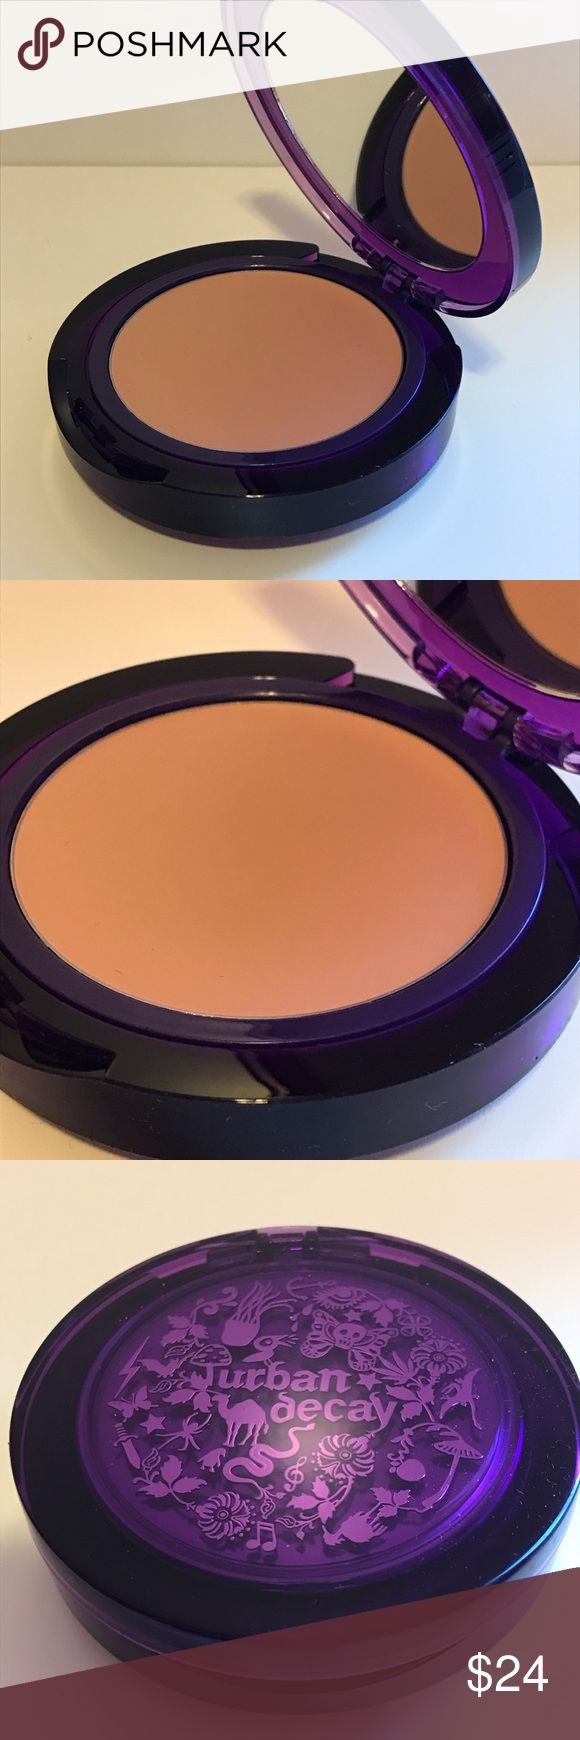 """Urban Decay cream to powder foundation Haze Urban Decay cream to powder foundation in """"Haze"""" (medium/light tan). Brand new, never used. No box. Discontinued. Includes applicator brush. Full size mirrored compact .28oz. No trades. Makeup Foundation"""